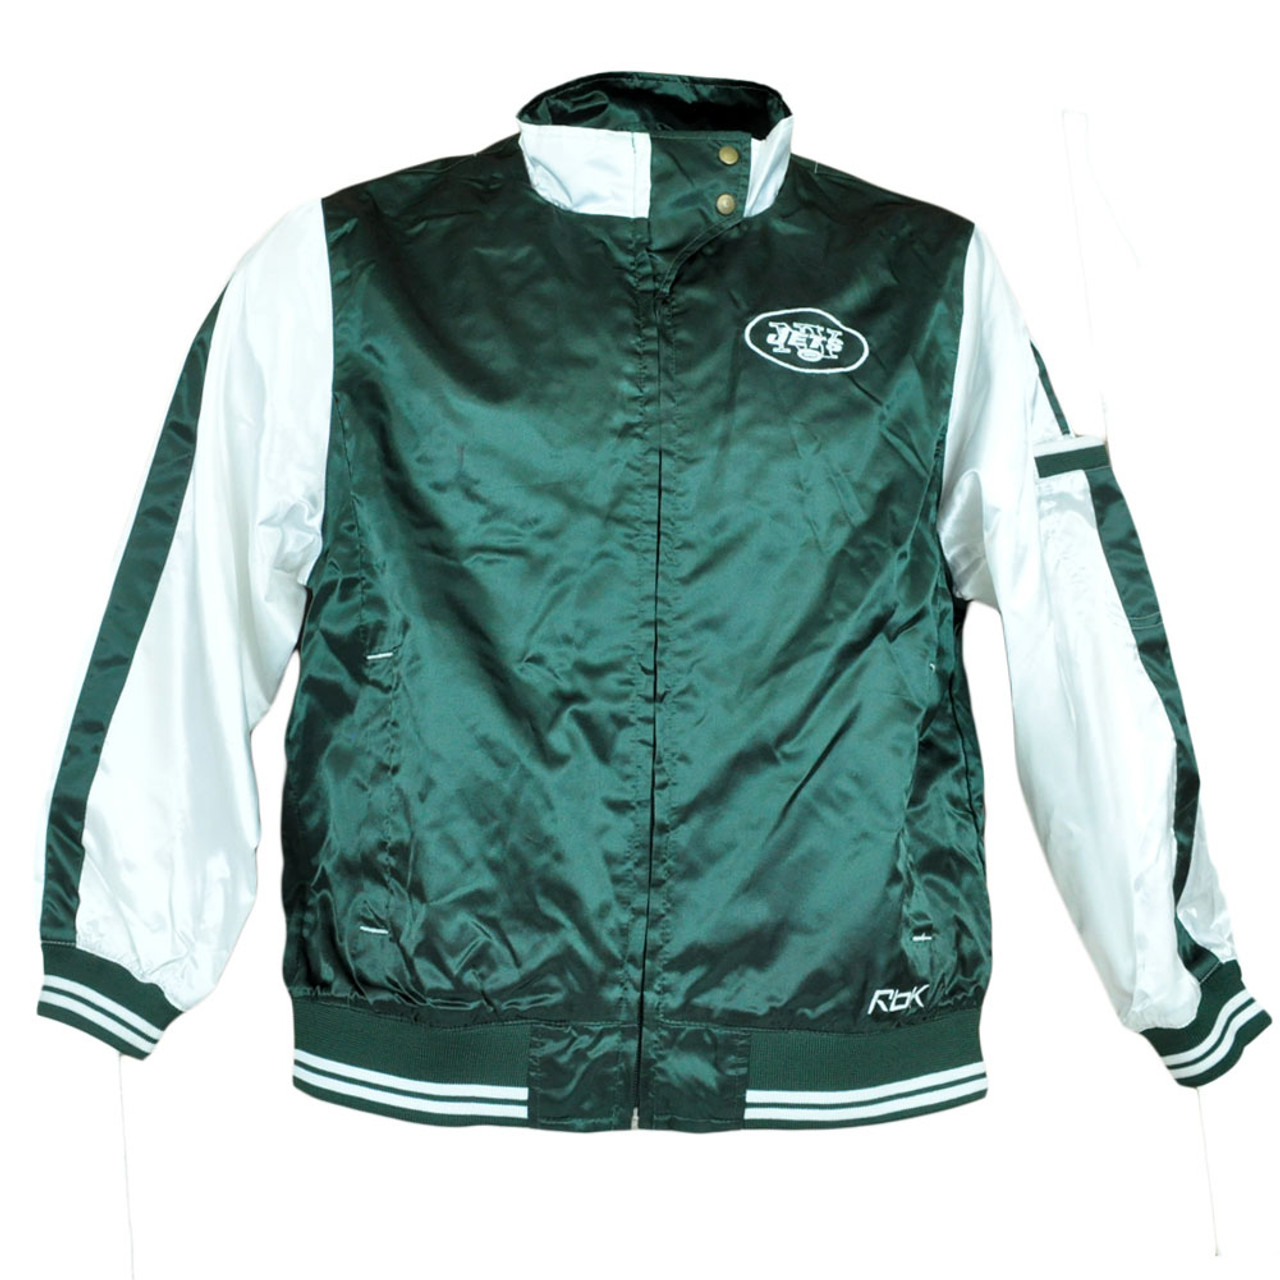 newest df071 e3d24 NFL Reebok Youth Girls Junior Satin New York Jets Jacket Zipper Jersey  Sweater